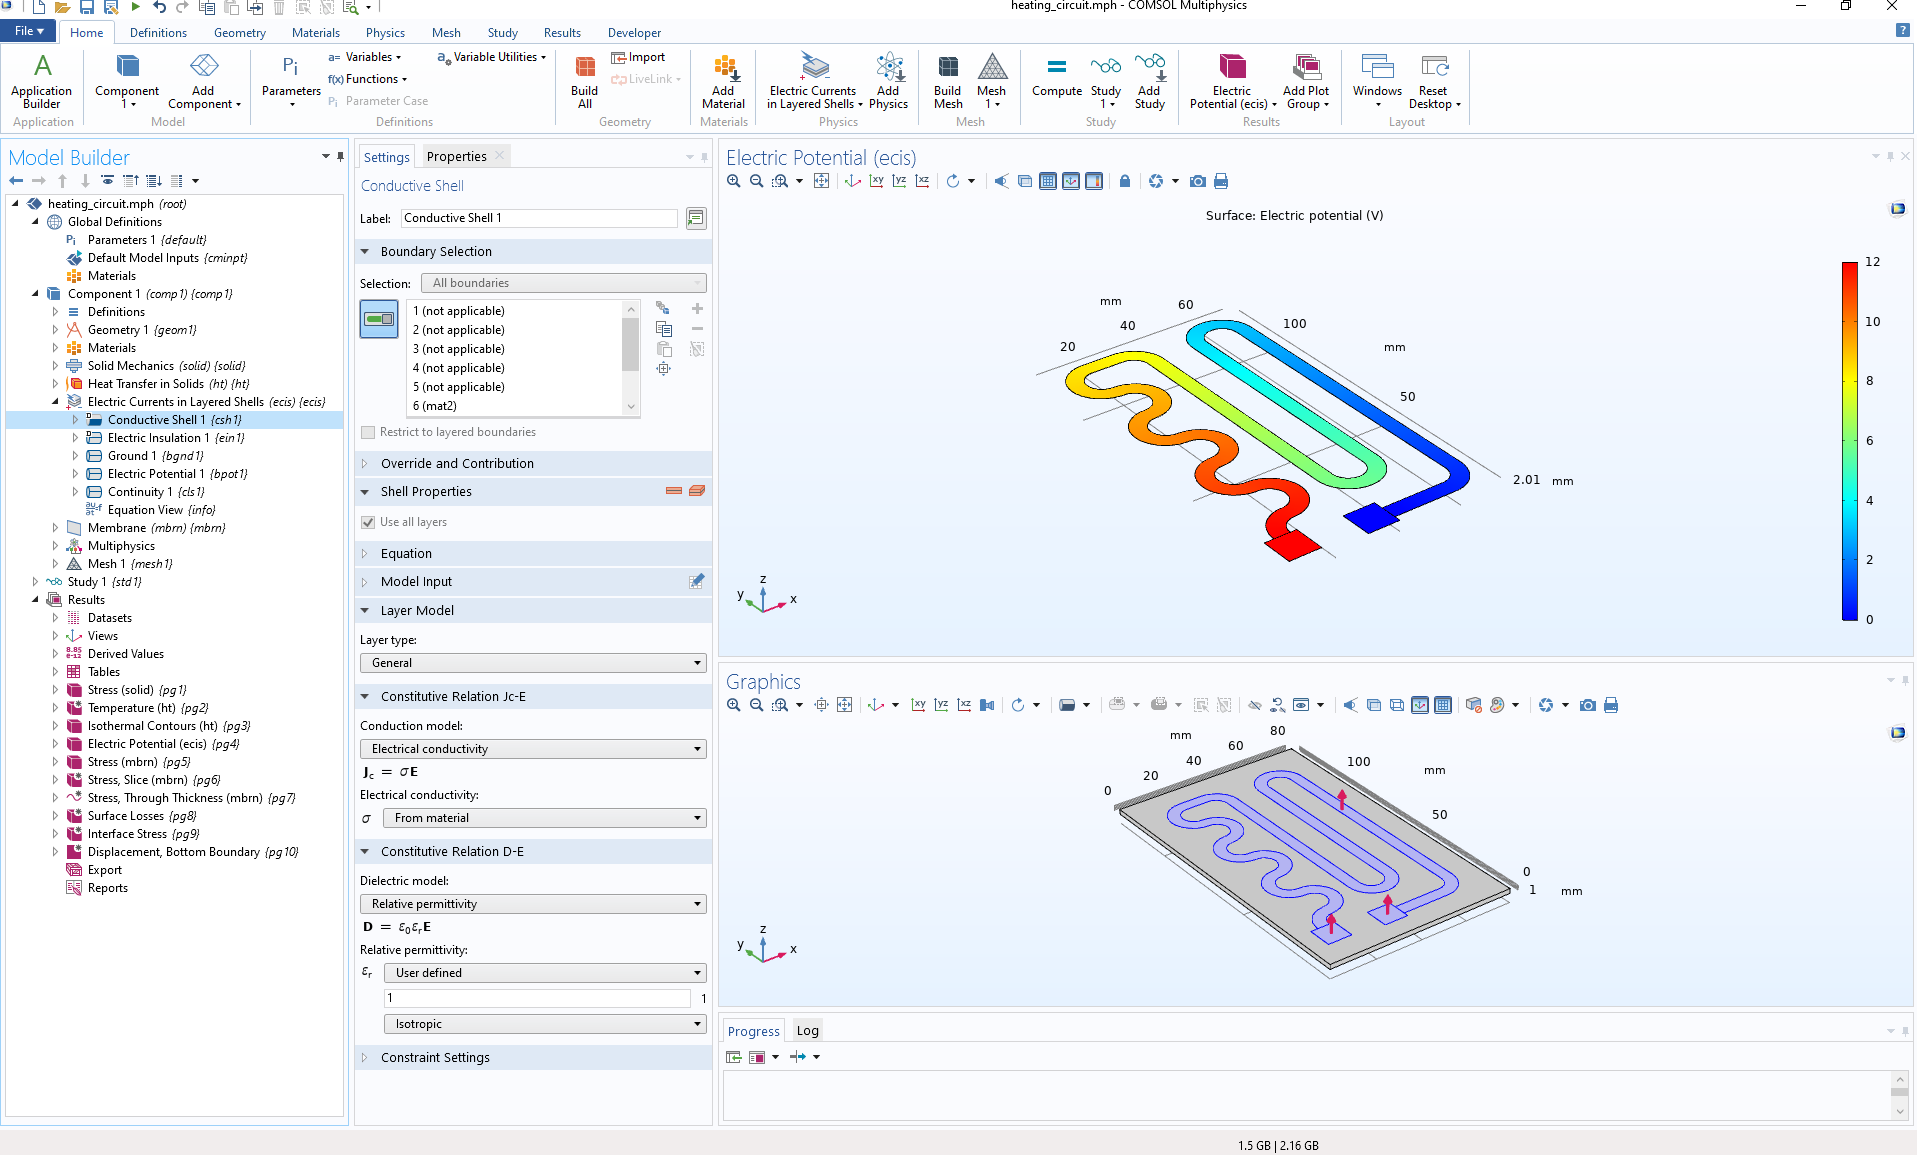 A screenshot of the heating circuit model in COMSOL Multiphysics®.